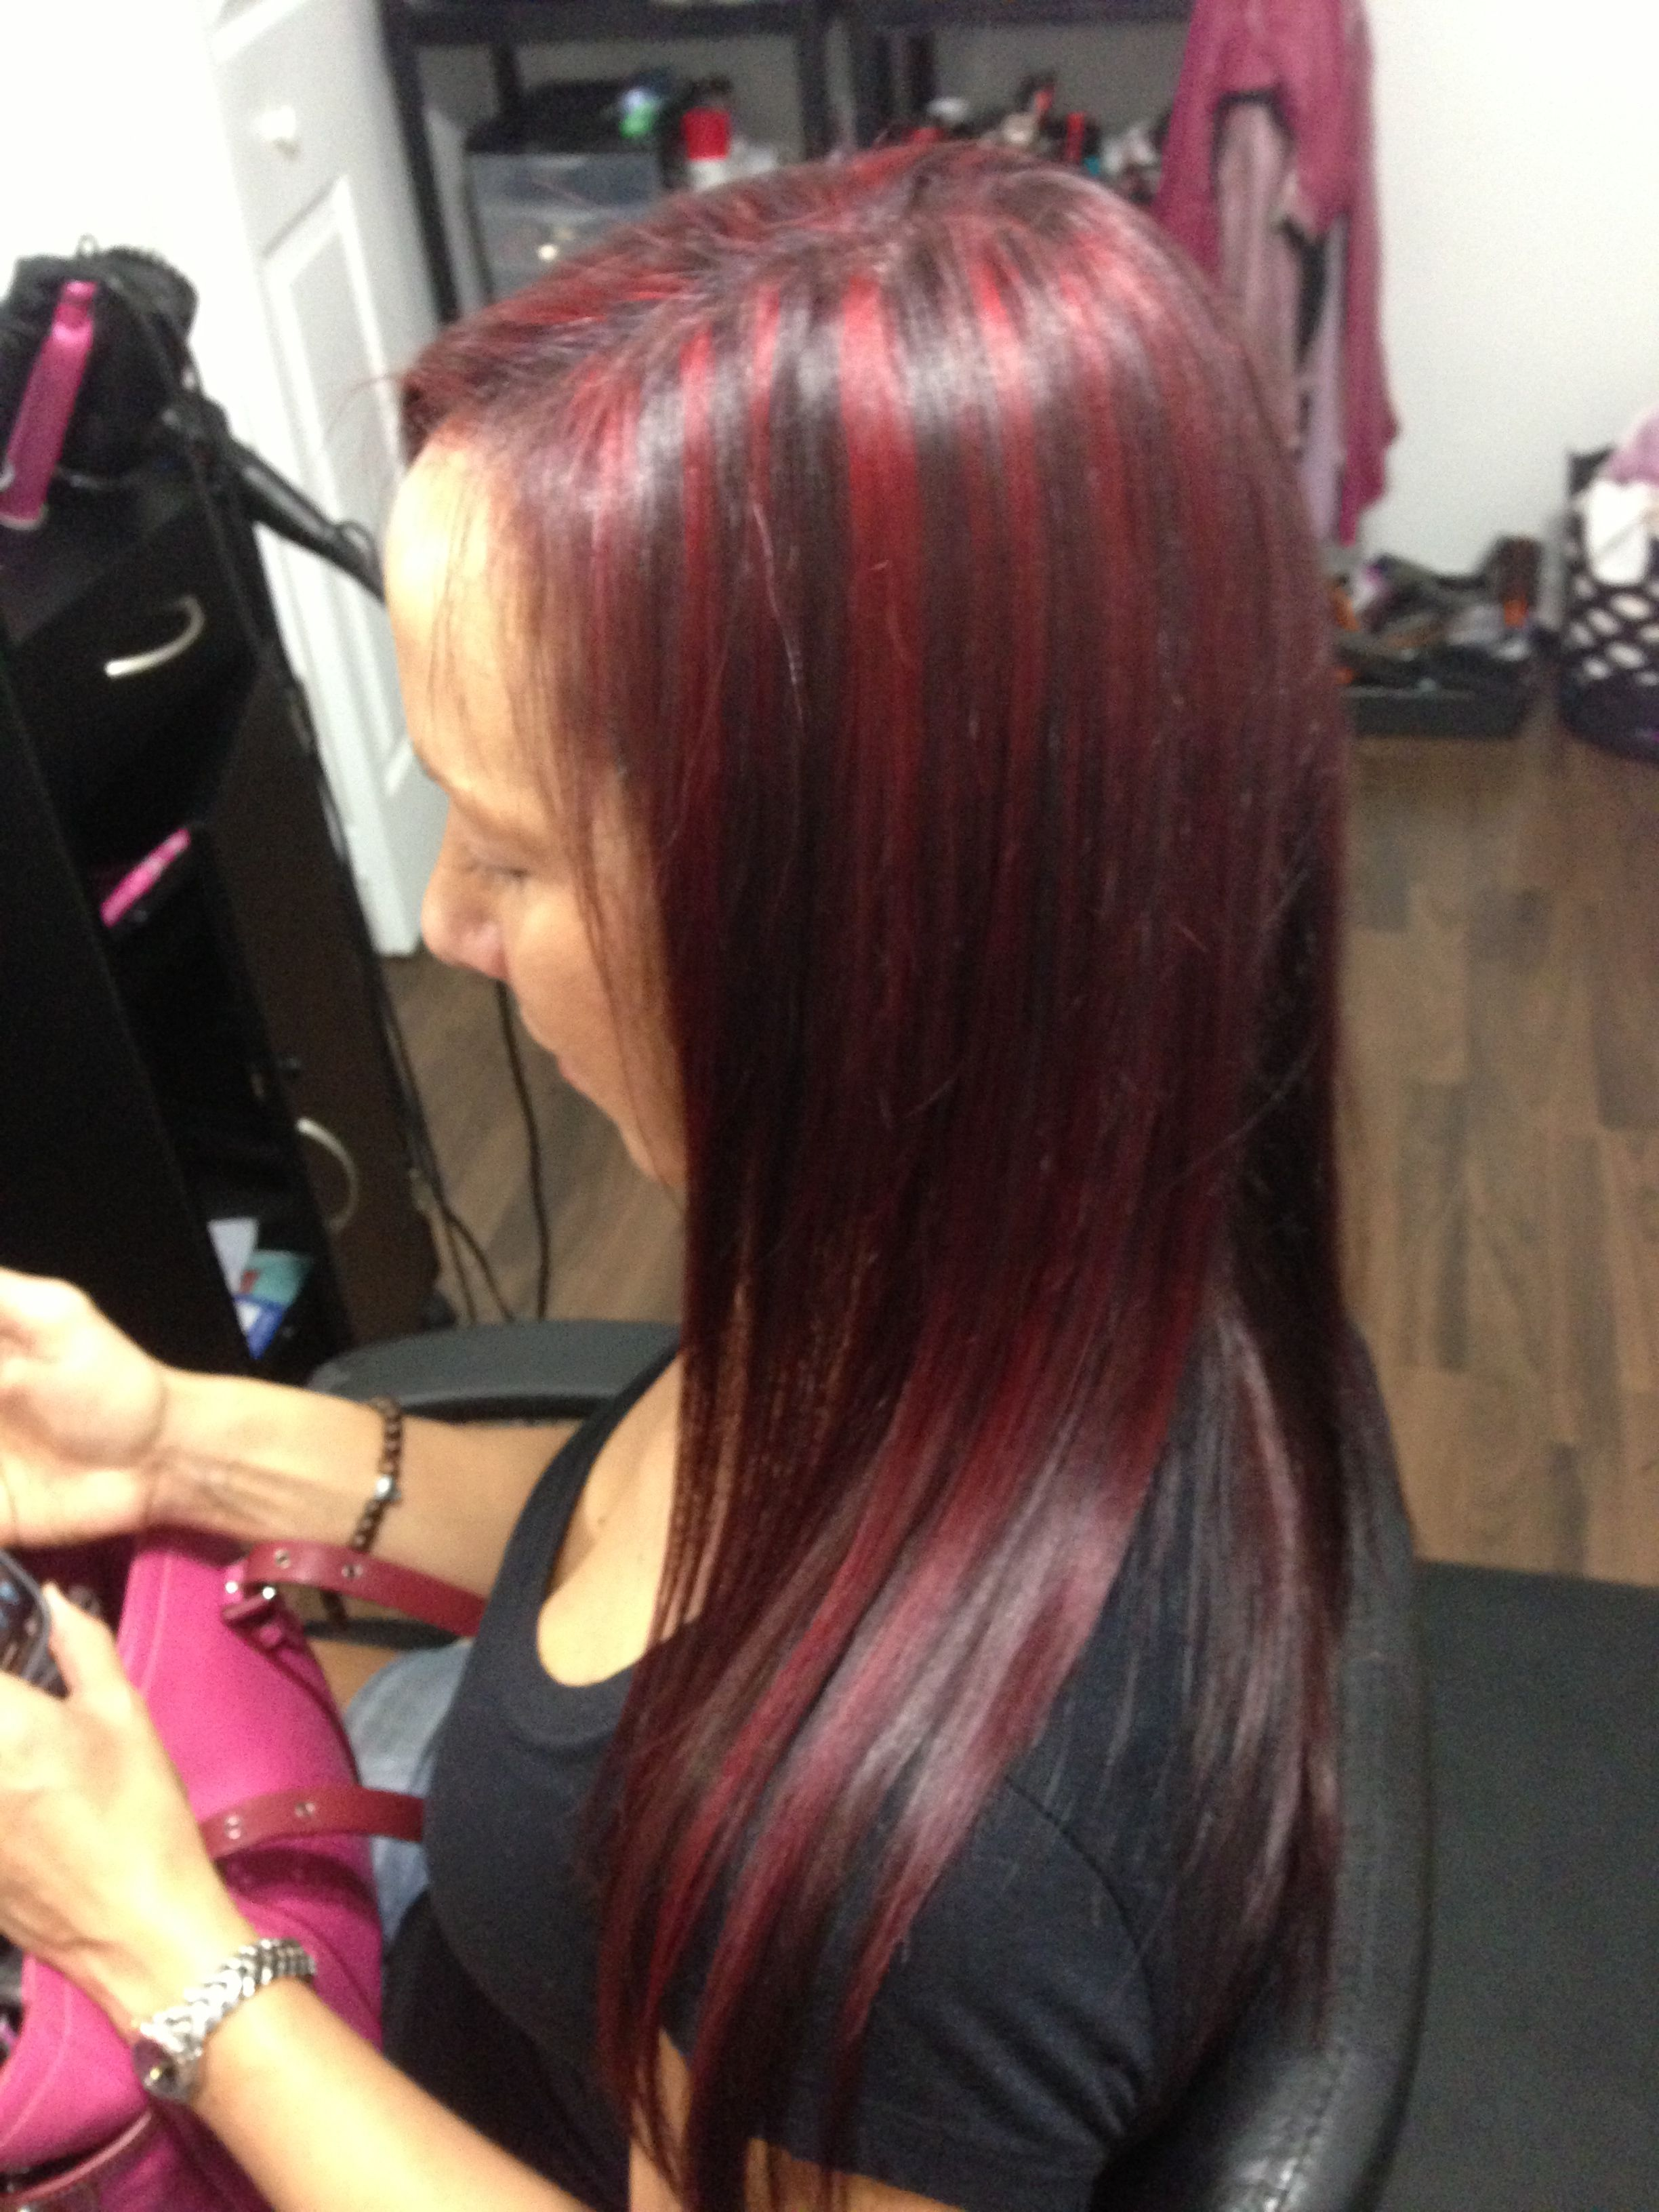 Mahogany Color With Bright Red Highlights Hair And Makeup By